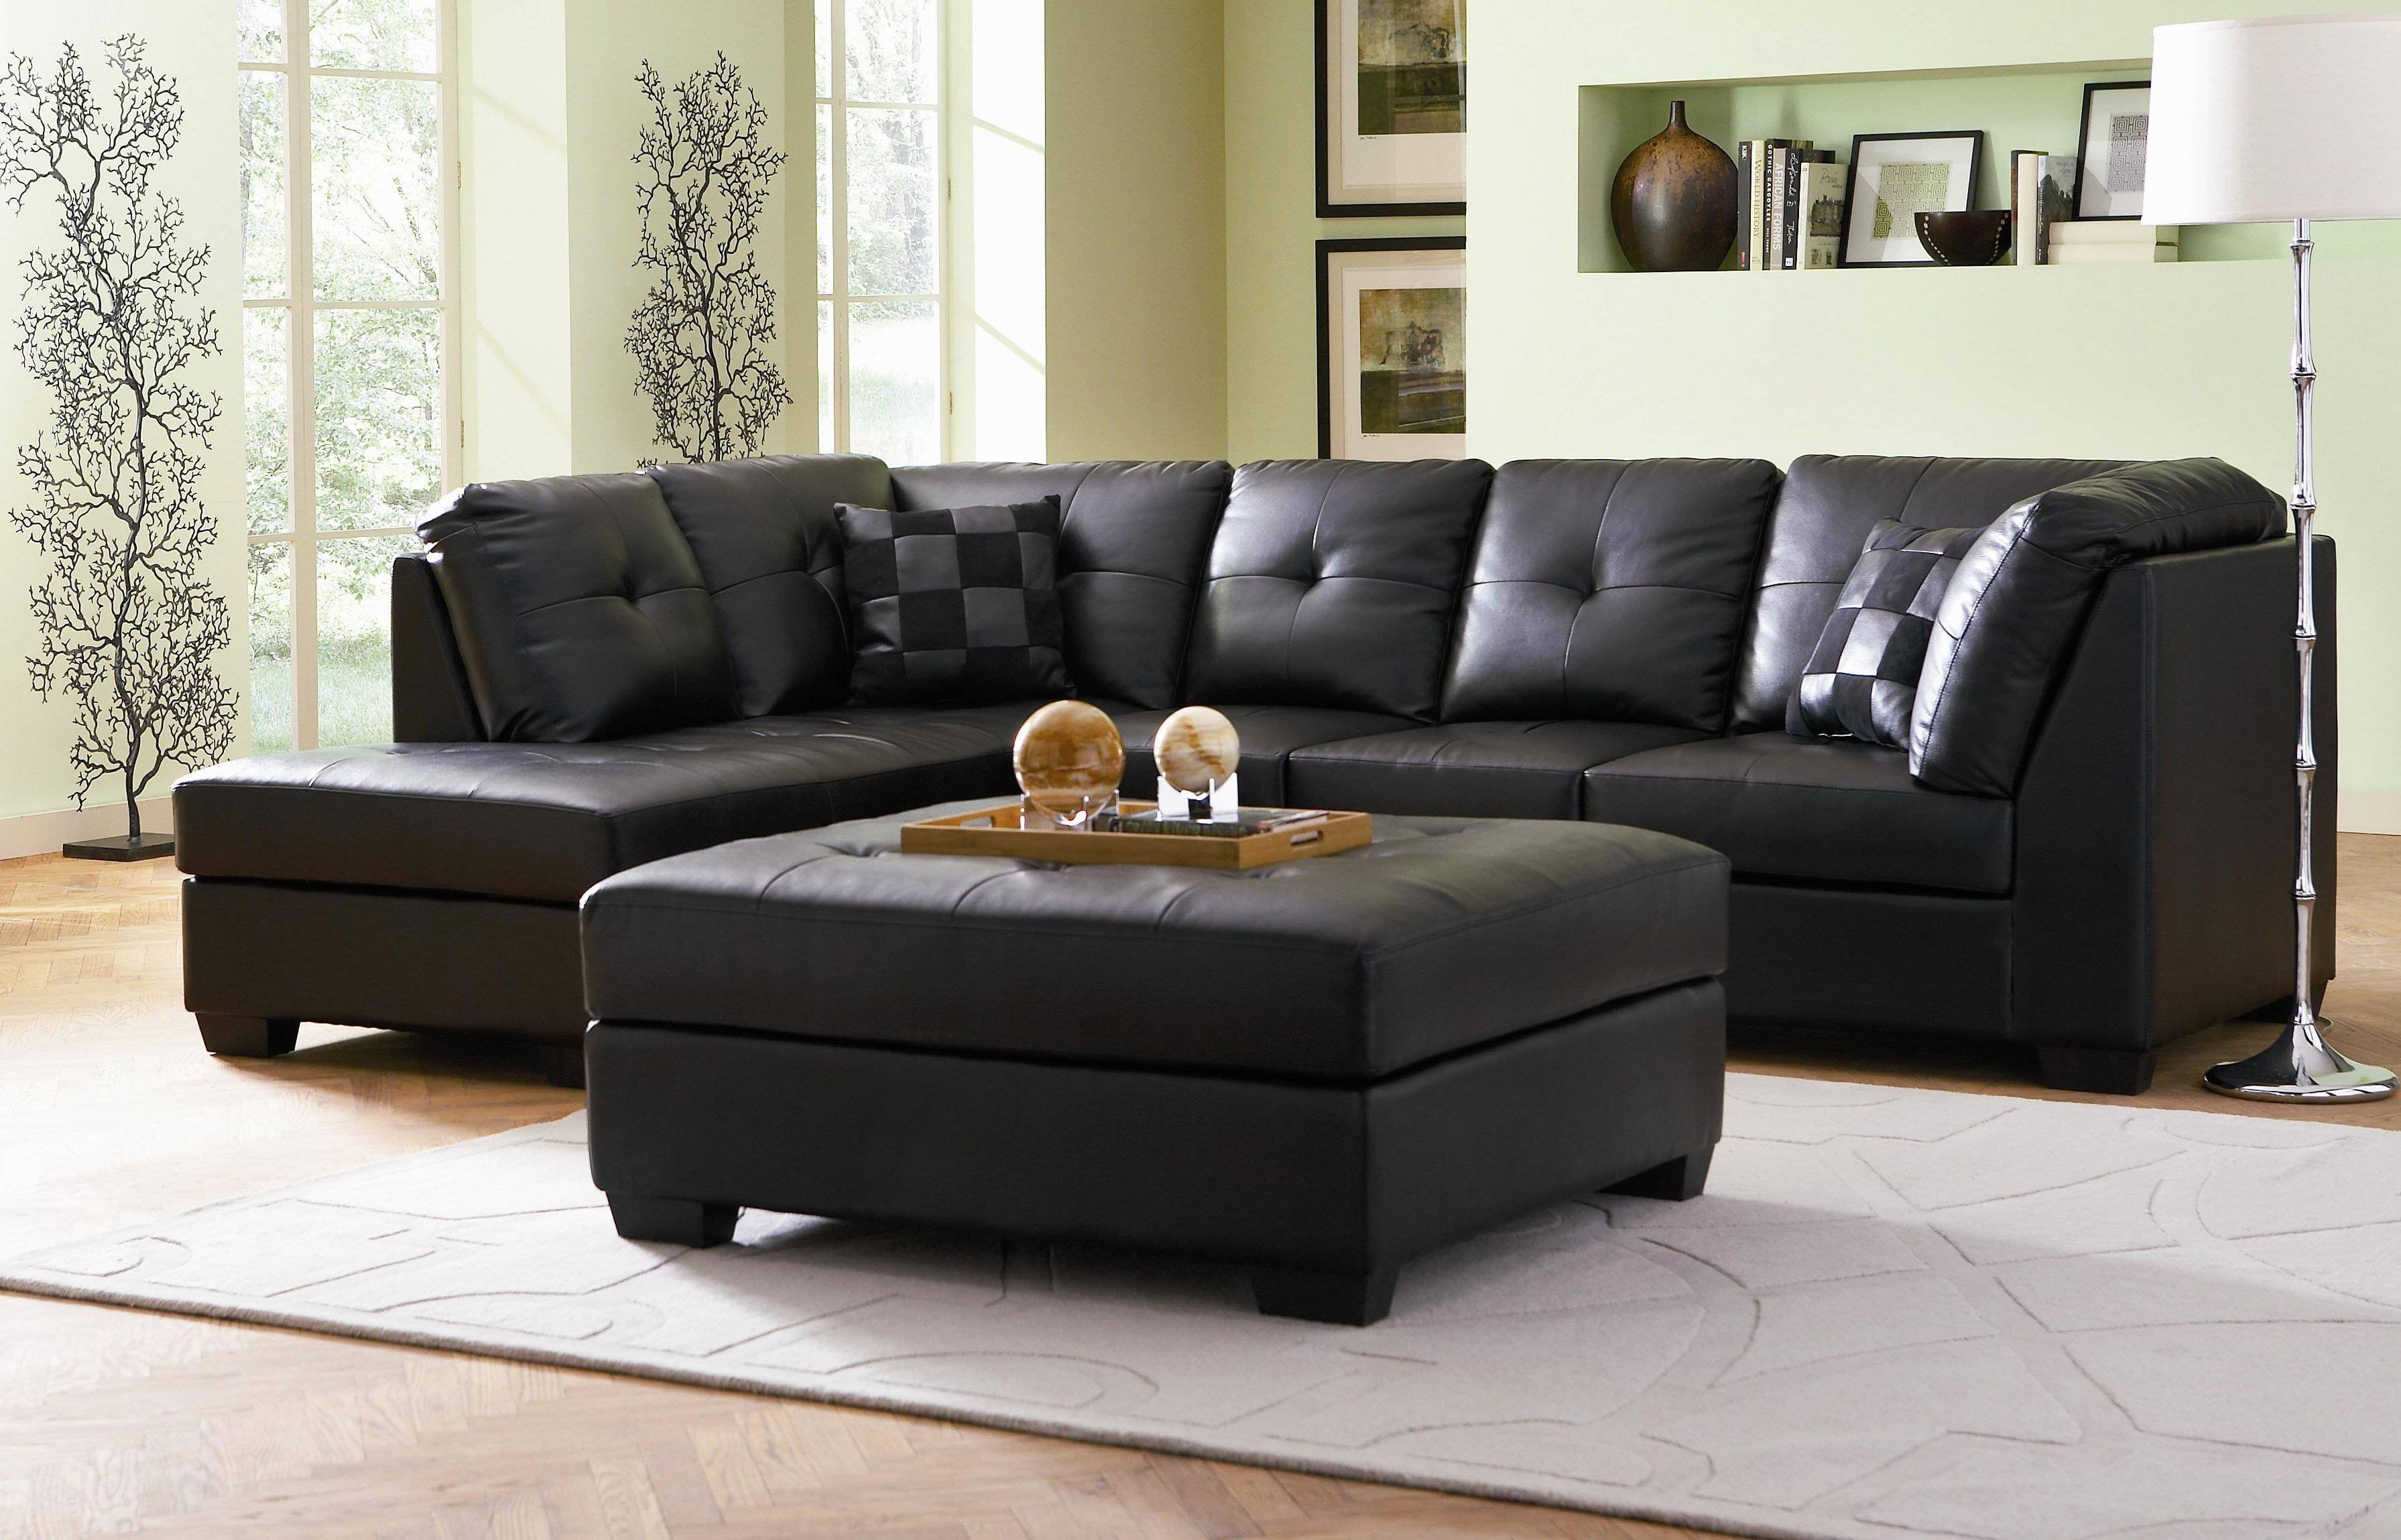 High End Sectional Sofa - Hotelsbacau within Discounted Sectional Sofa (Image 21 of 30)